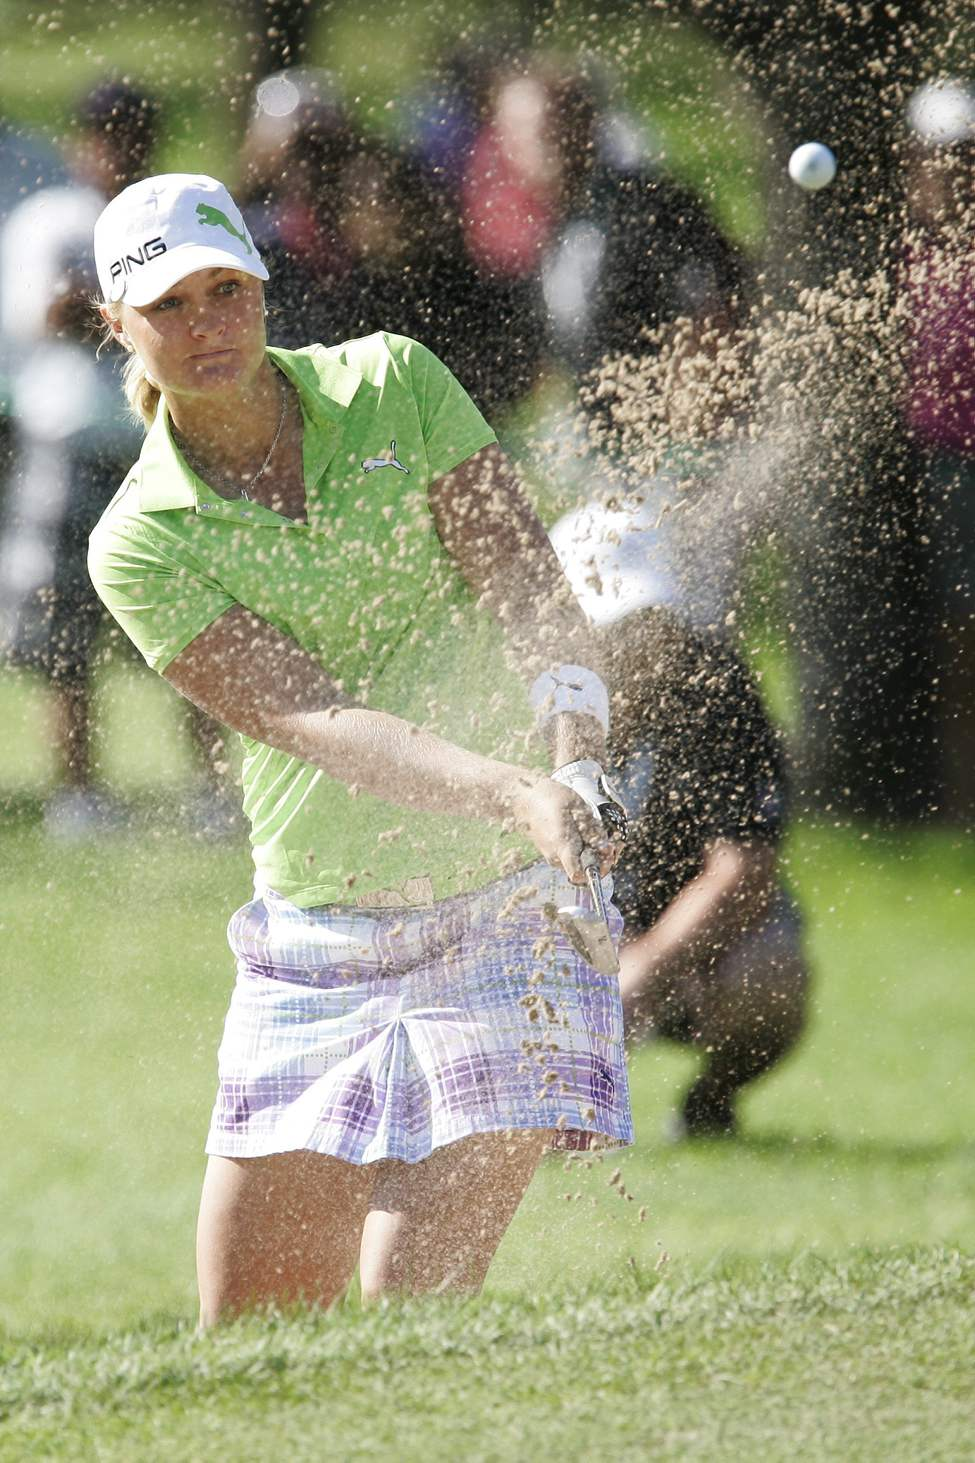 Anna Nordqvist hits out of the bunker on the fourteenth hole in the opening round of the CN Canadian Women's Open 2010 in Winnipeg, Thursday, August 26, 2010.